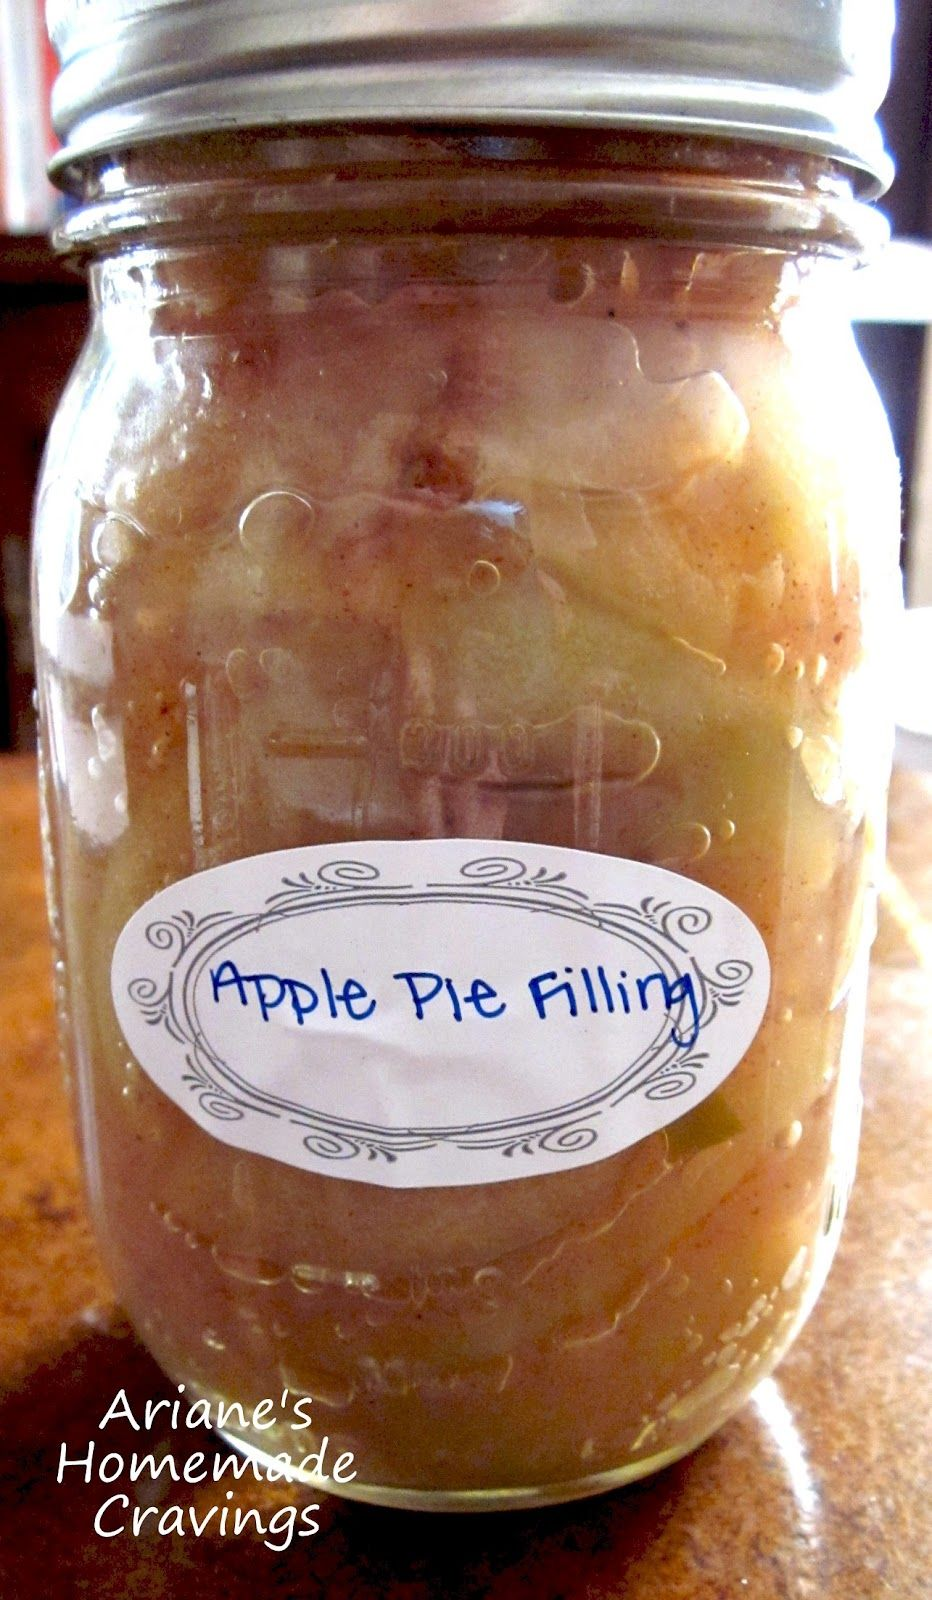 Ariane's Homemade Cravings Canned Apple Pie Filling   Apple pies ...